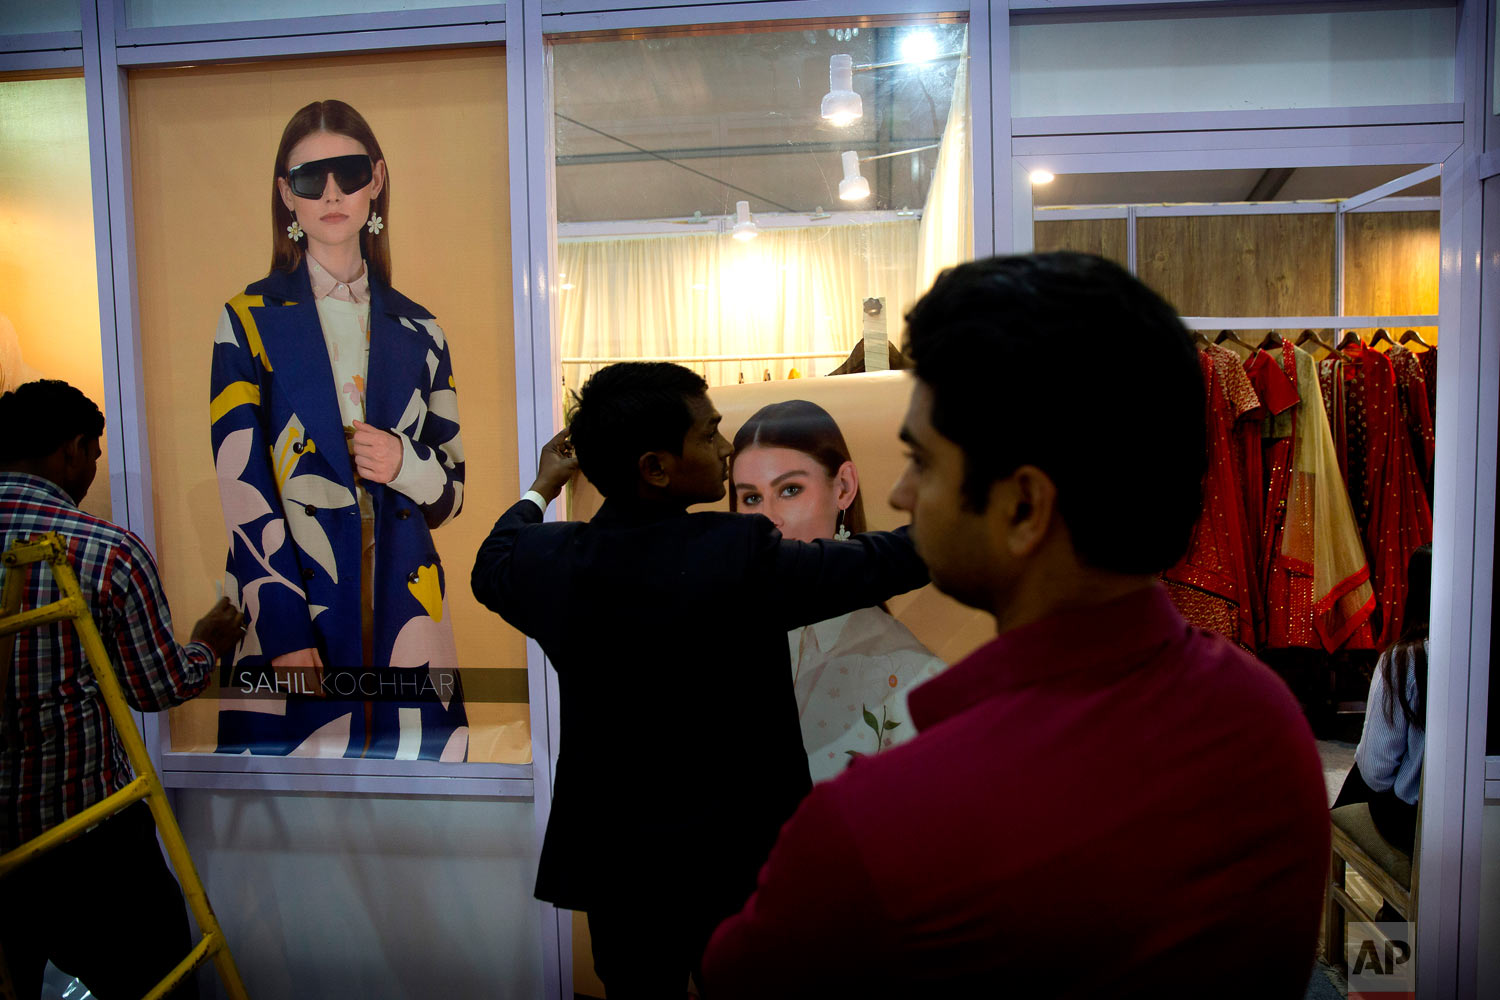 Workers put up posters of models outside a fashion designer's stall in an exhibition during Lotus Makeup India Fashion Week, Wednesday, March 13, 2019, in New Delhi, India. (AP Photo/Manish Swarup)